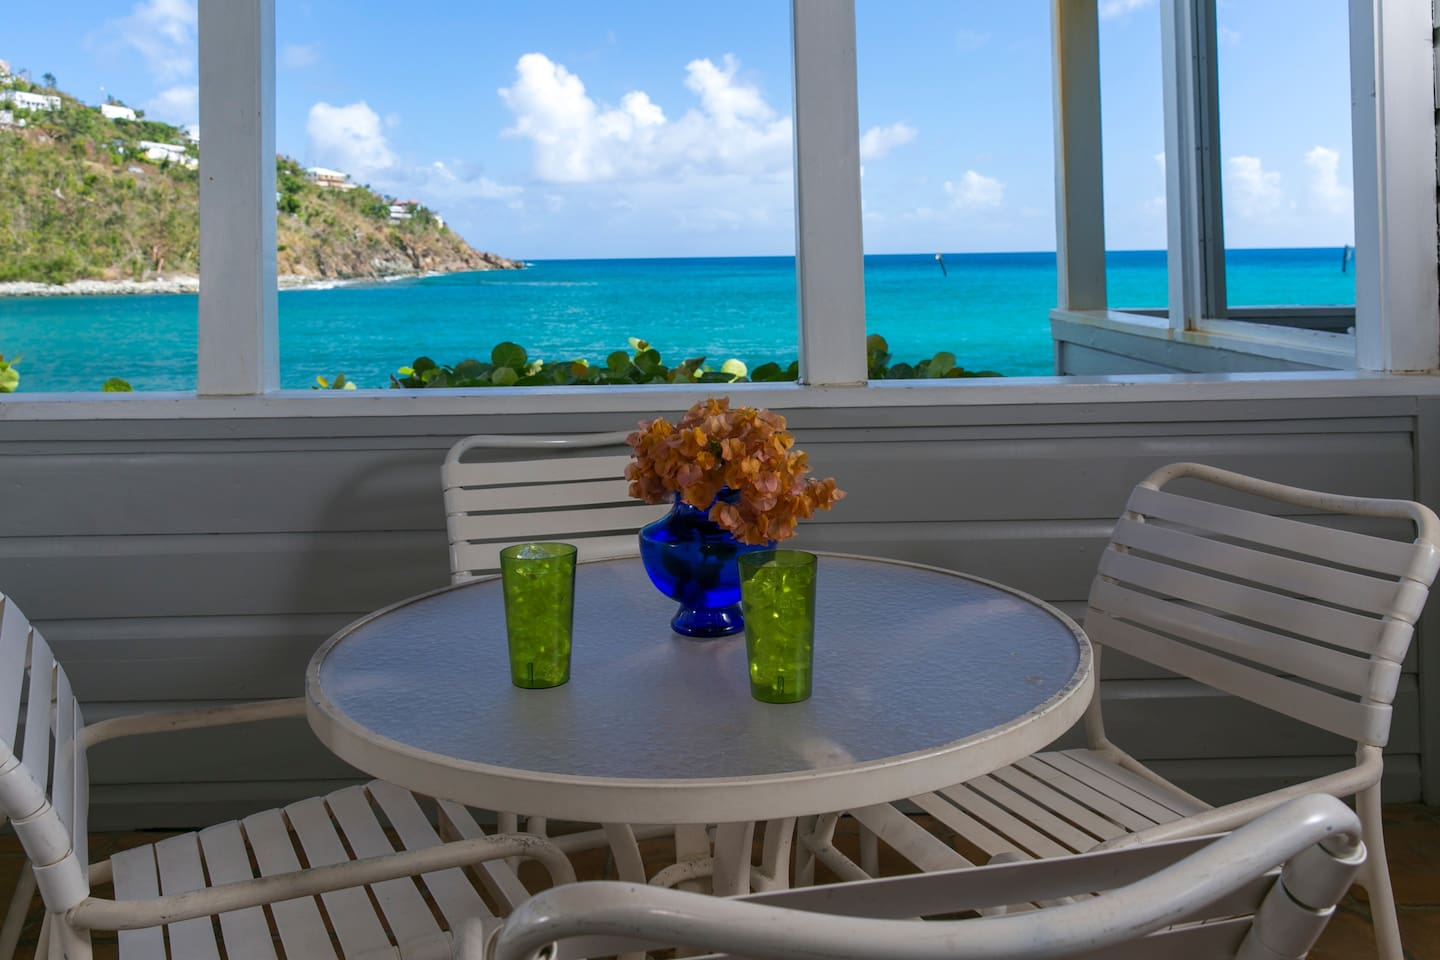 Waterfront Studio Condominium for 2-4 Guests.  Walk to Cruz Bay shopping and restaurants. Snorkel out front or visit National Park Beaches. With queen bed and second queen bed in  loft fun for kids and other guests' Contact me to hold your dates.